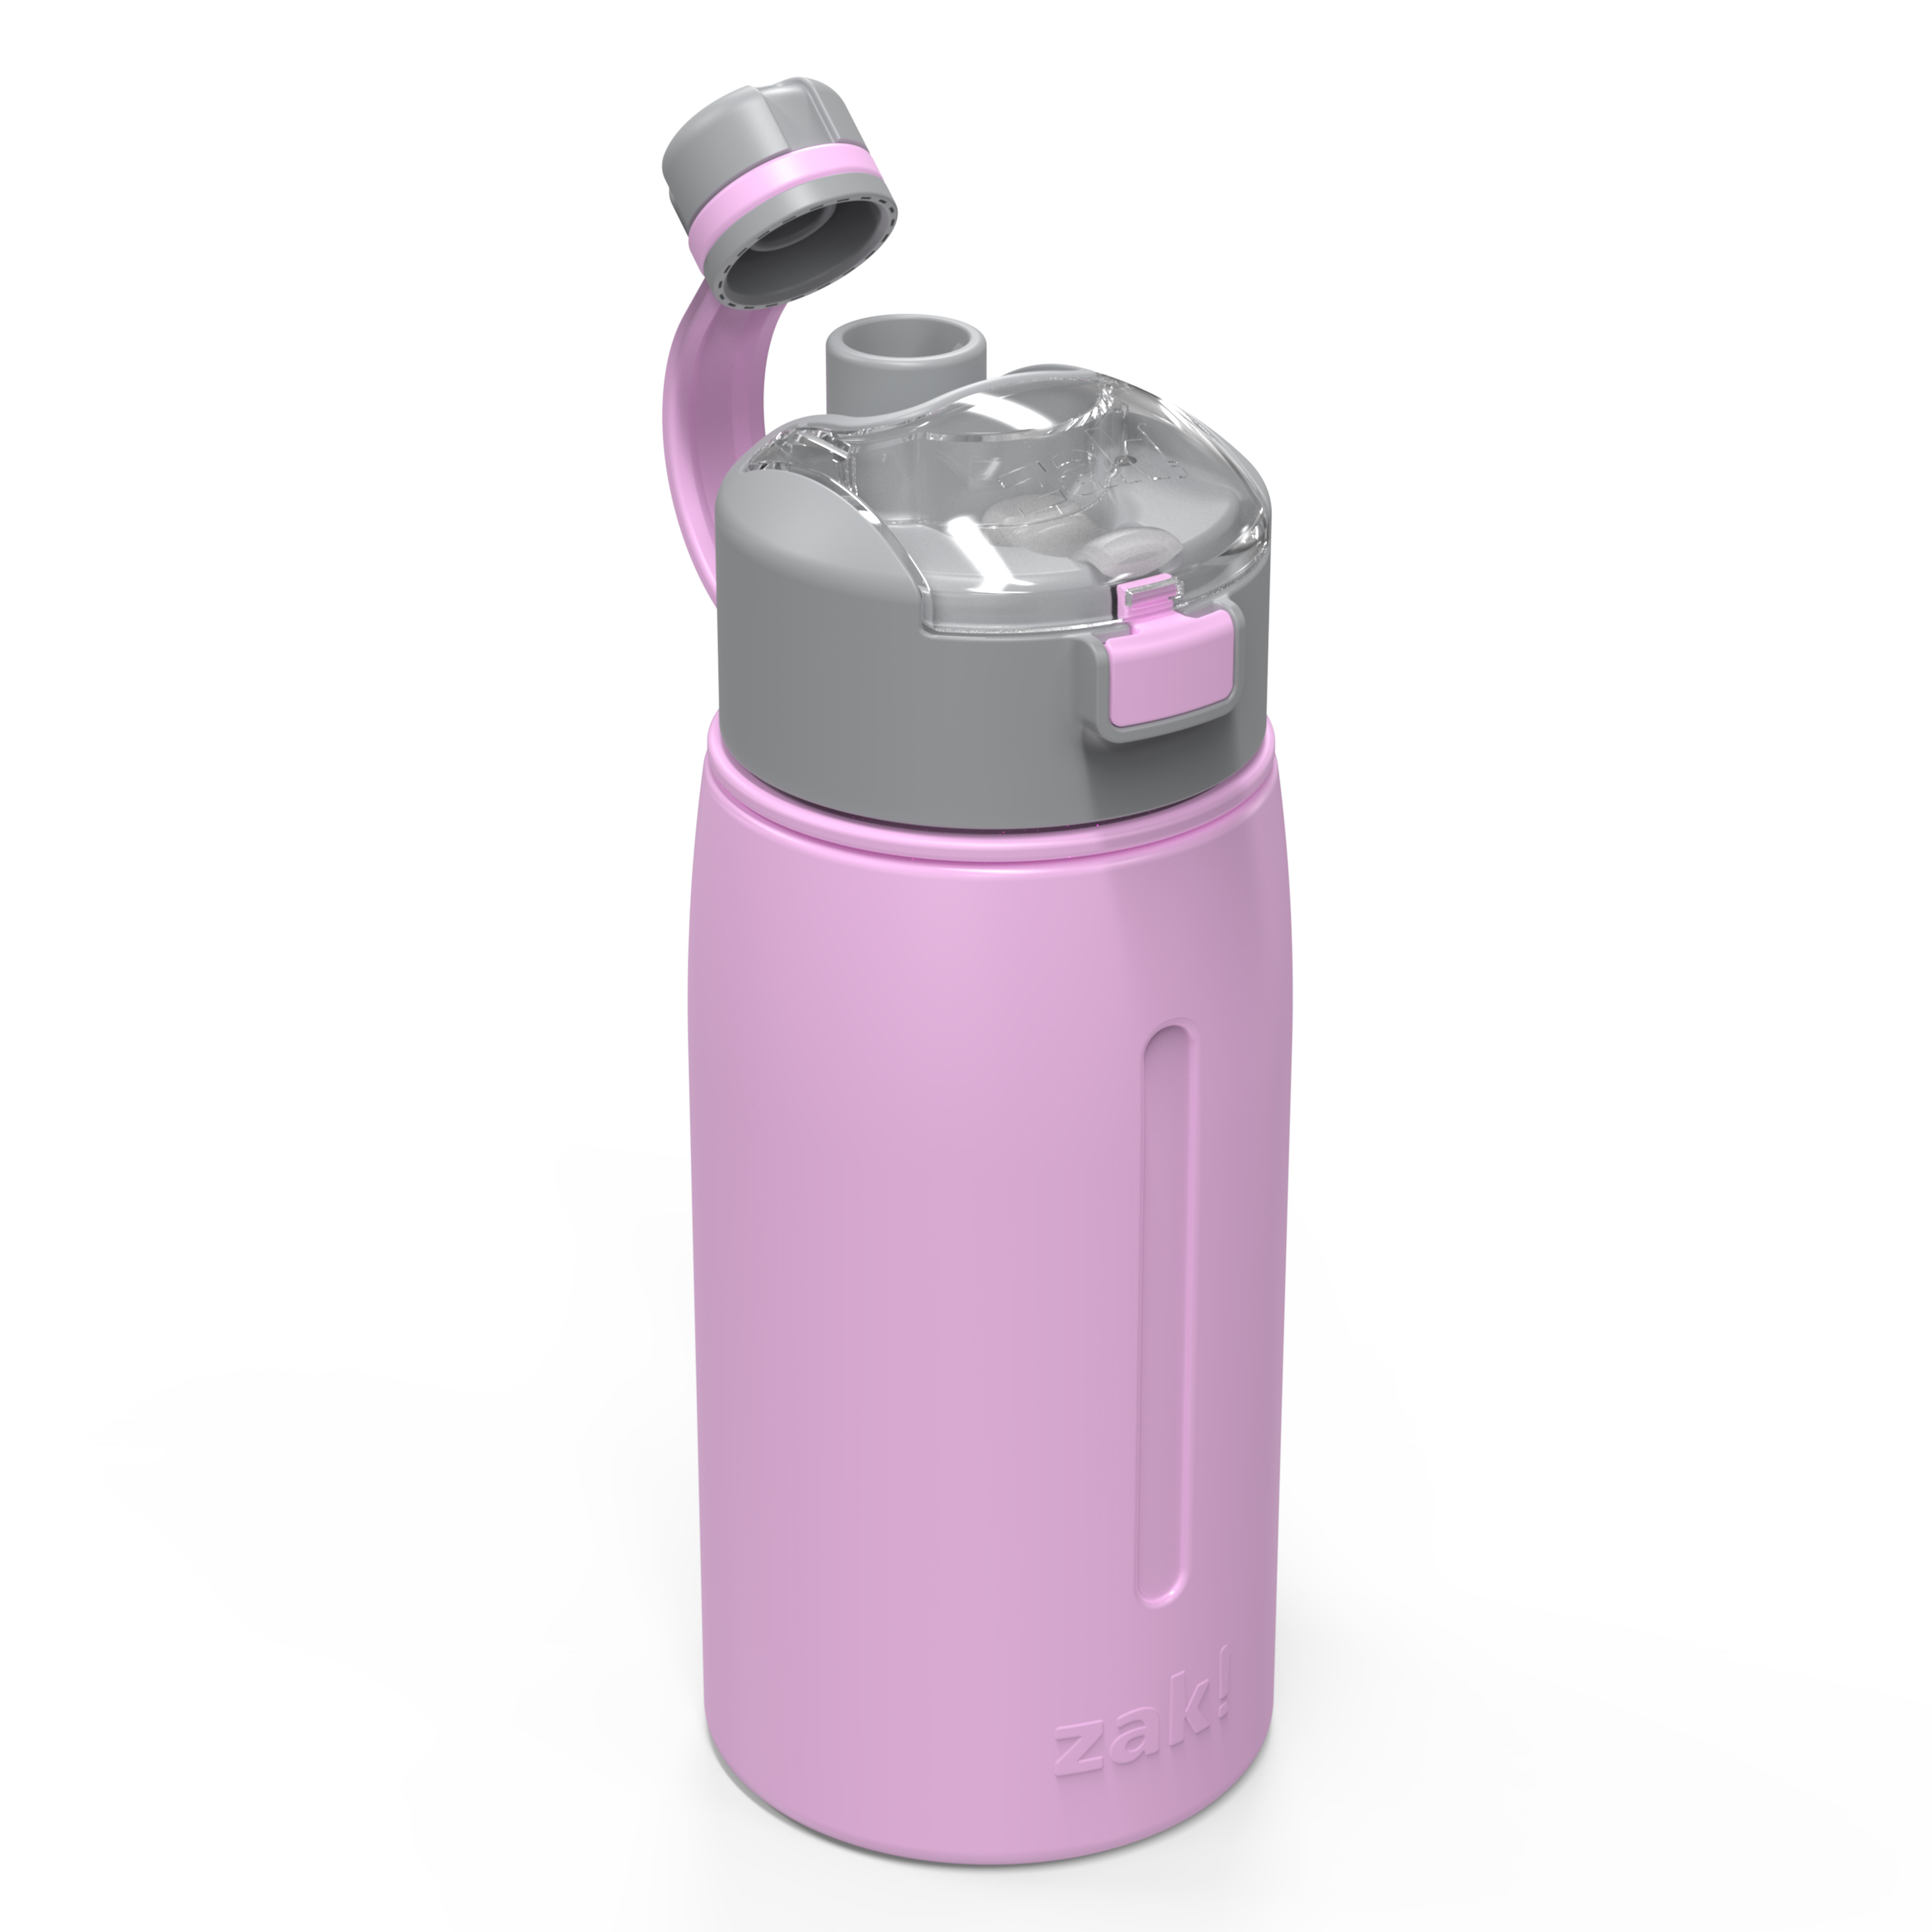 Genesis 18 ounce Vacuum Insulated Stainless Steel Tumbler, Lilac slideshow image 4